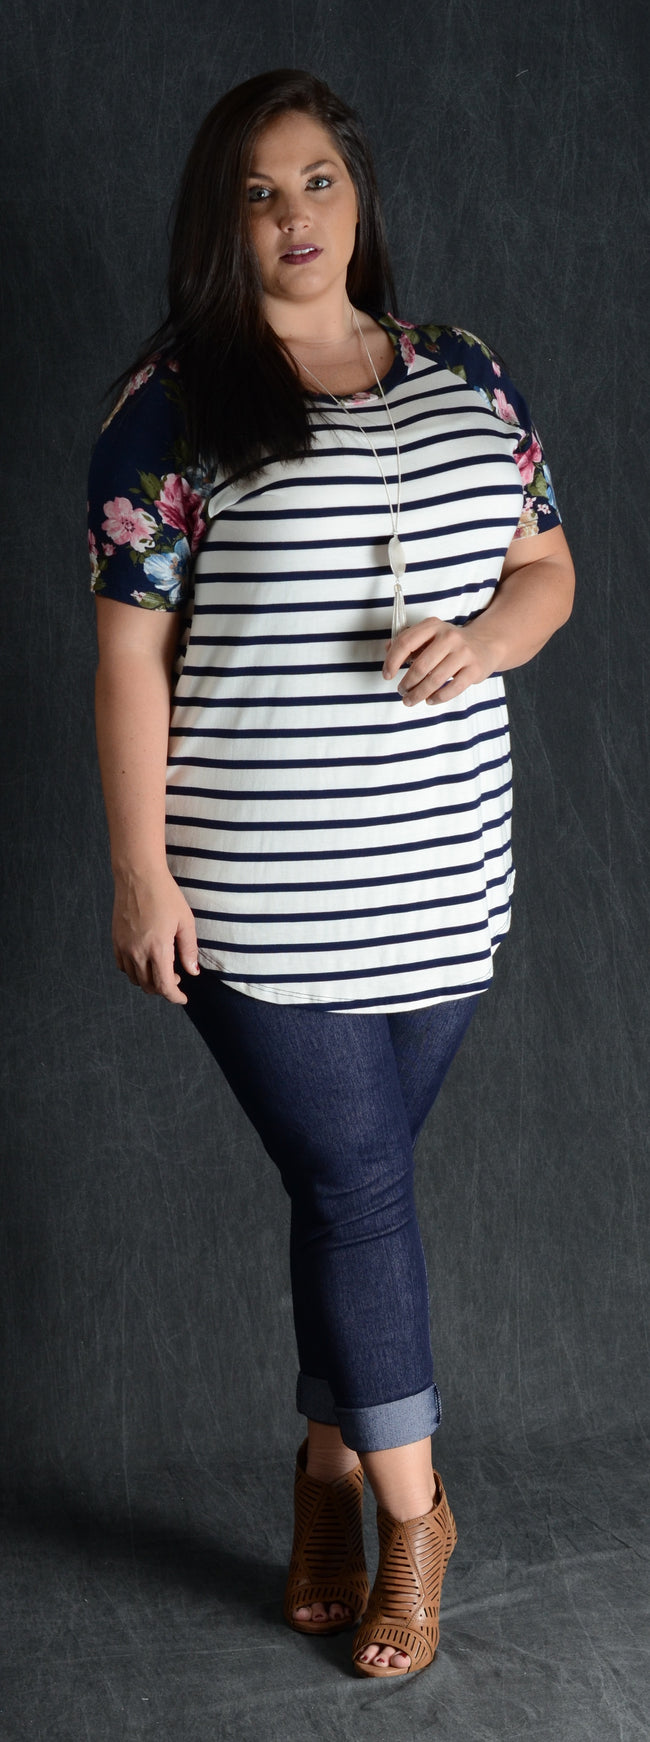 Navy Stripes & Floral Sleeve Top - www.mycurvystore.com - Curvy Boutique